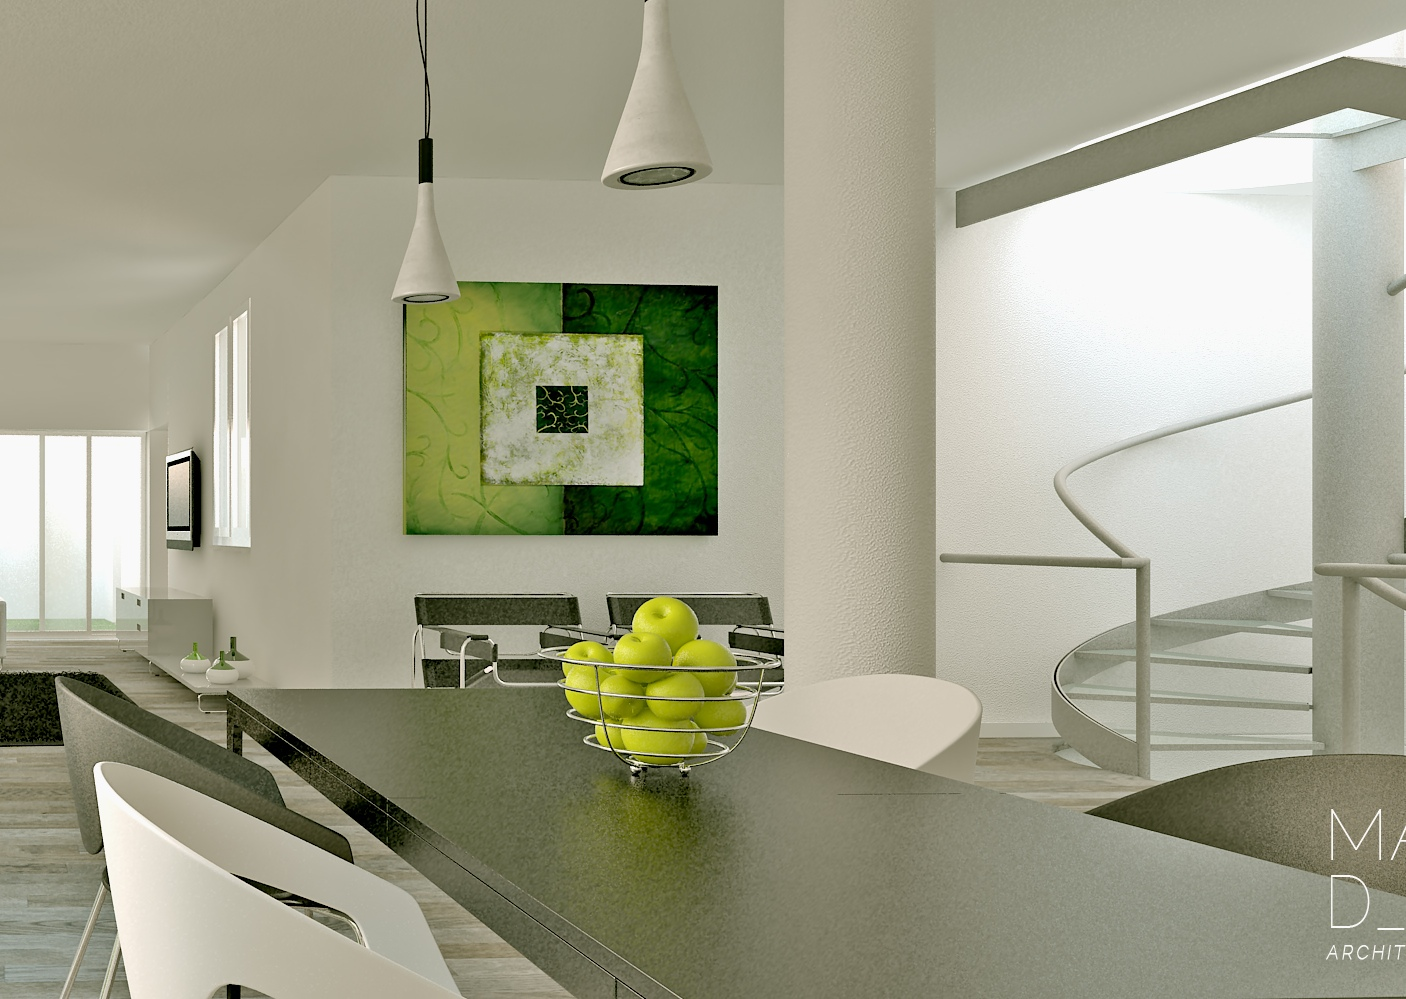 Green white gray dining room interior design ideas for Interior decorating designs ideas